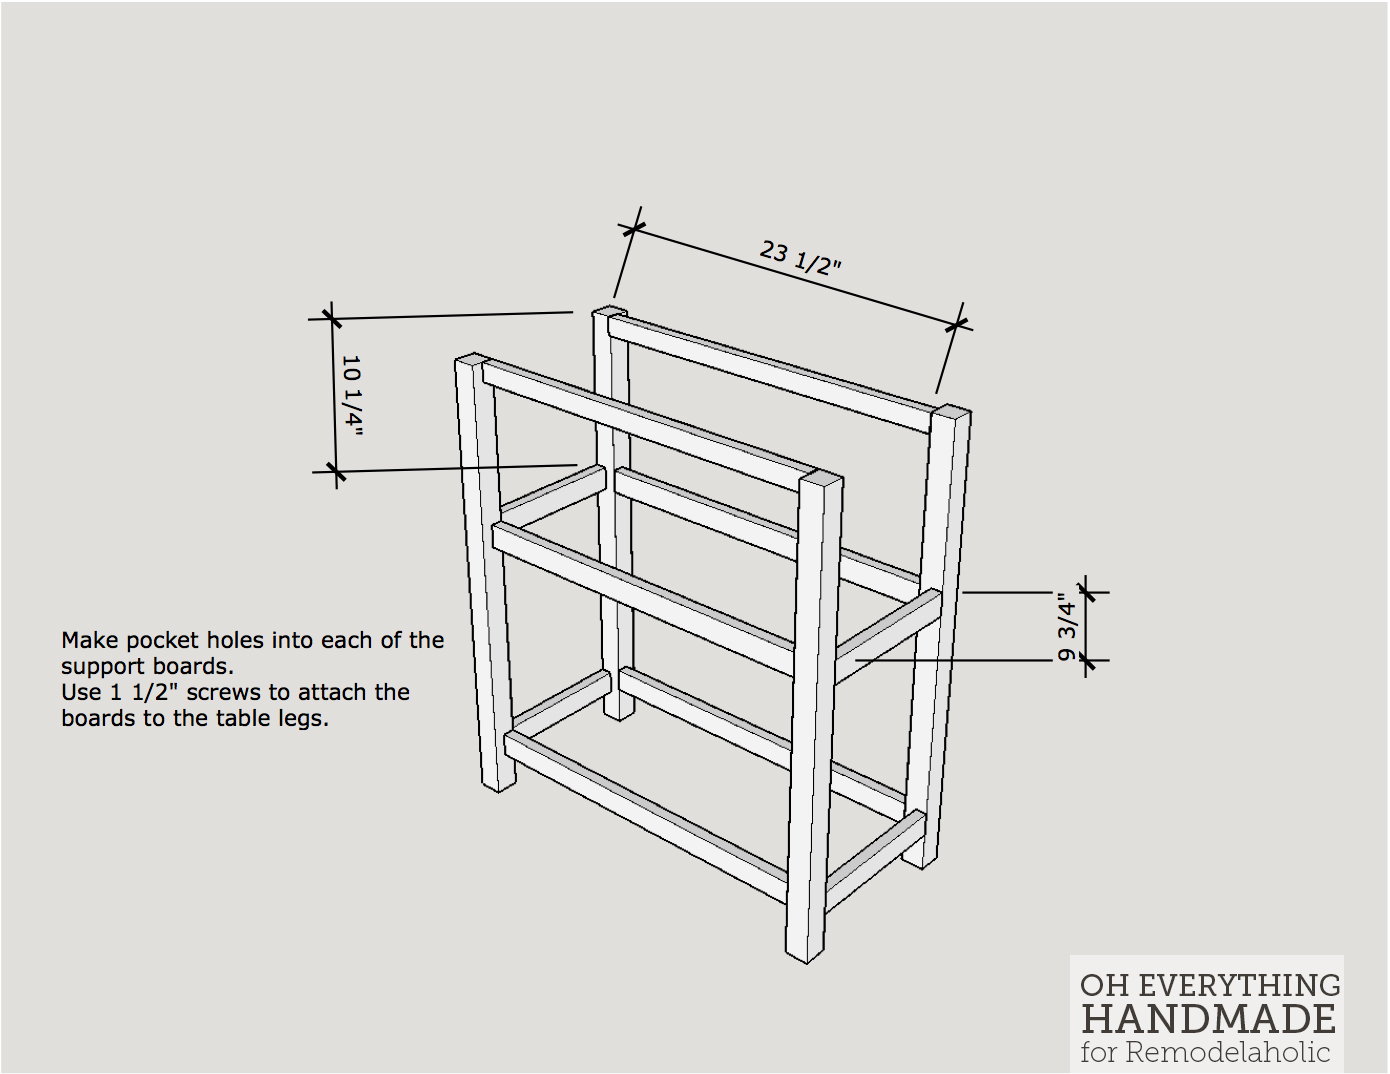 Craft Table made from scrap wood - How to attach the table legs1